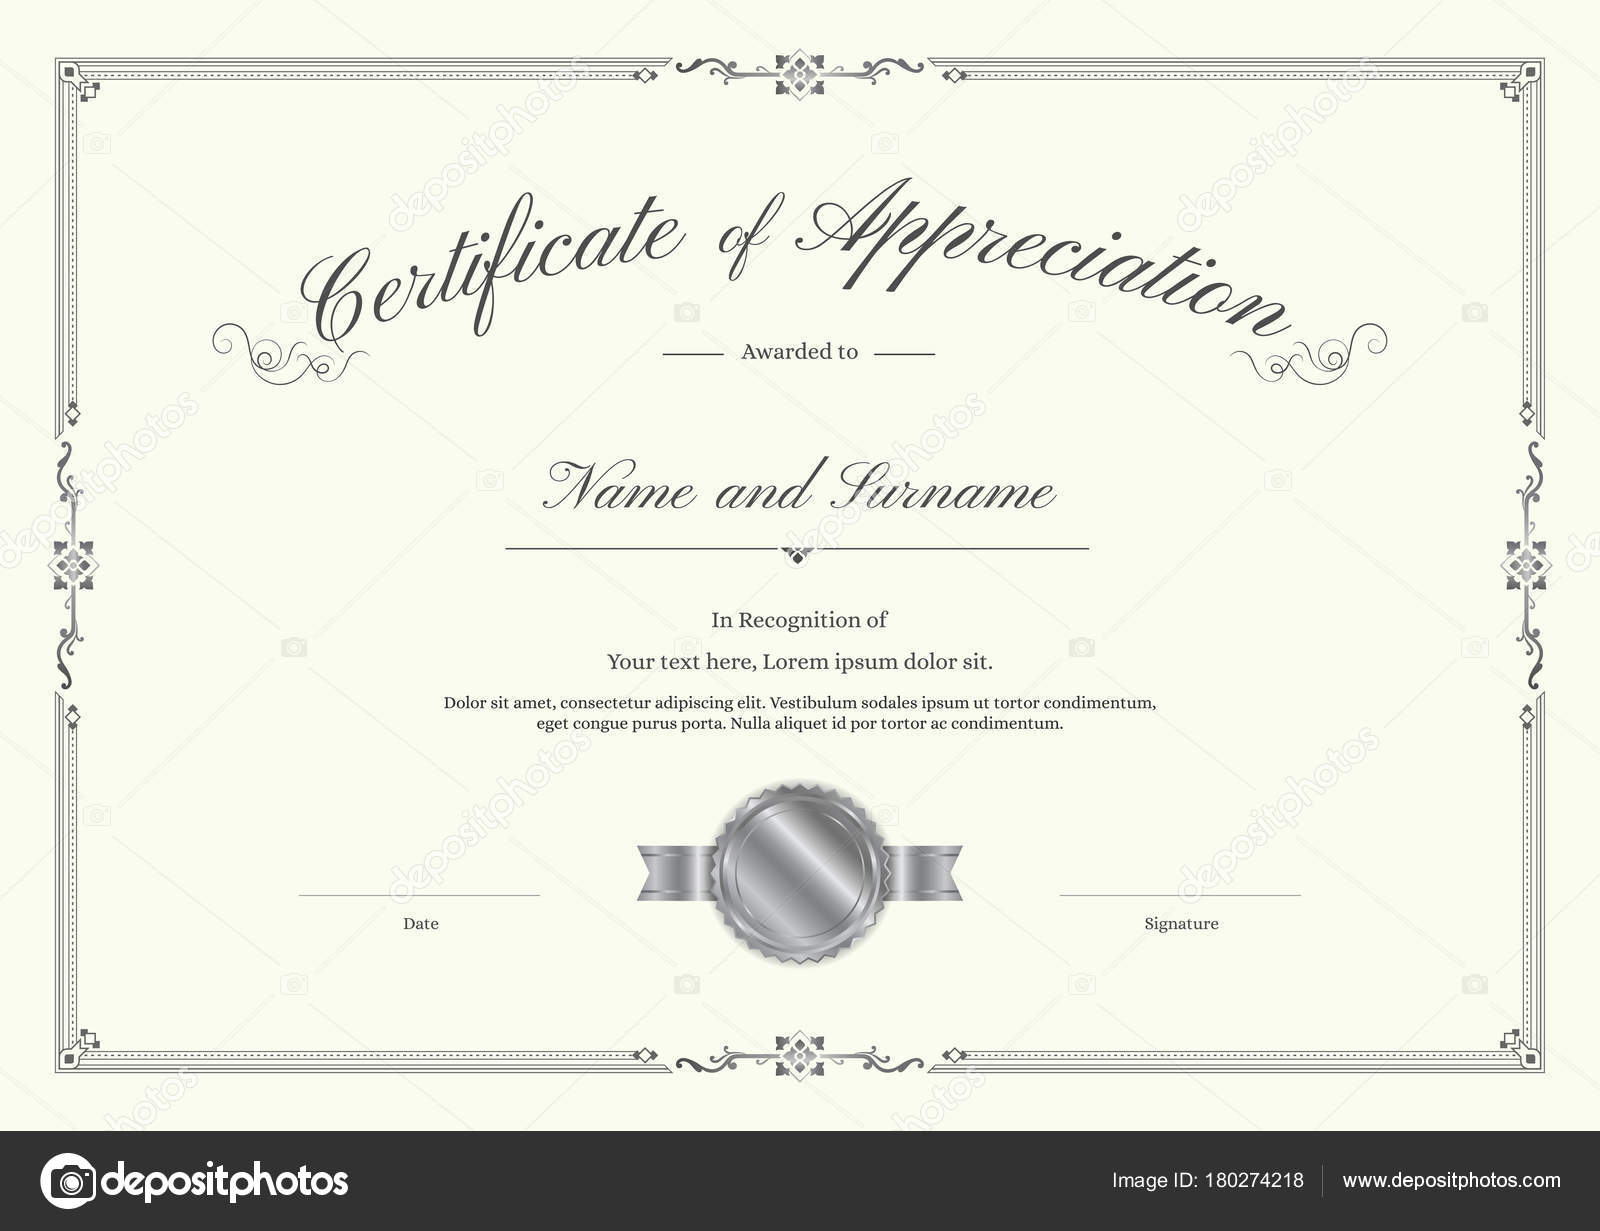 Luxury certificate template with elegant border frame diploma luxury certificate template with elegant border frame diploma design for graduation or completion stock yadclub Choice Image